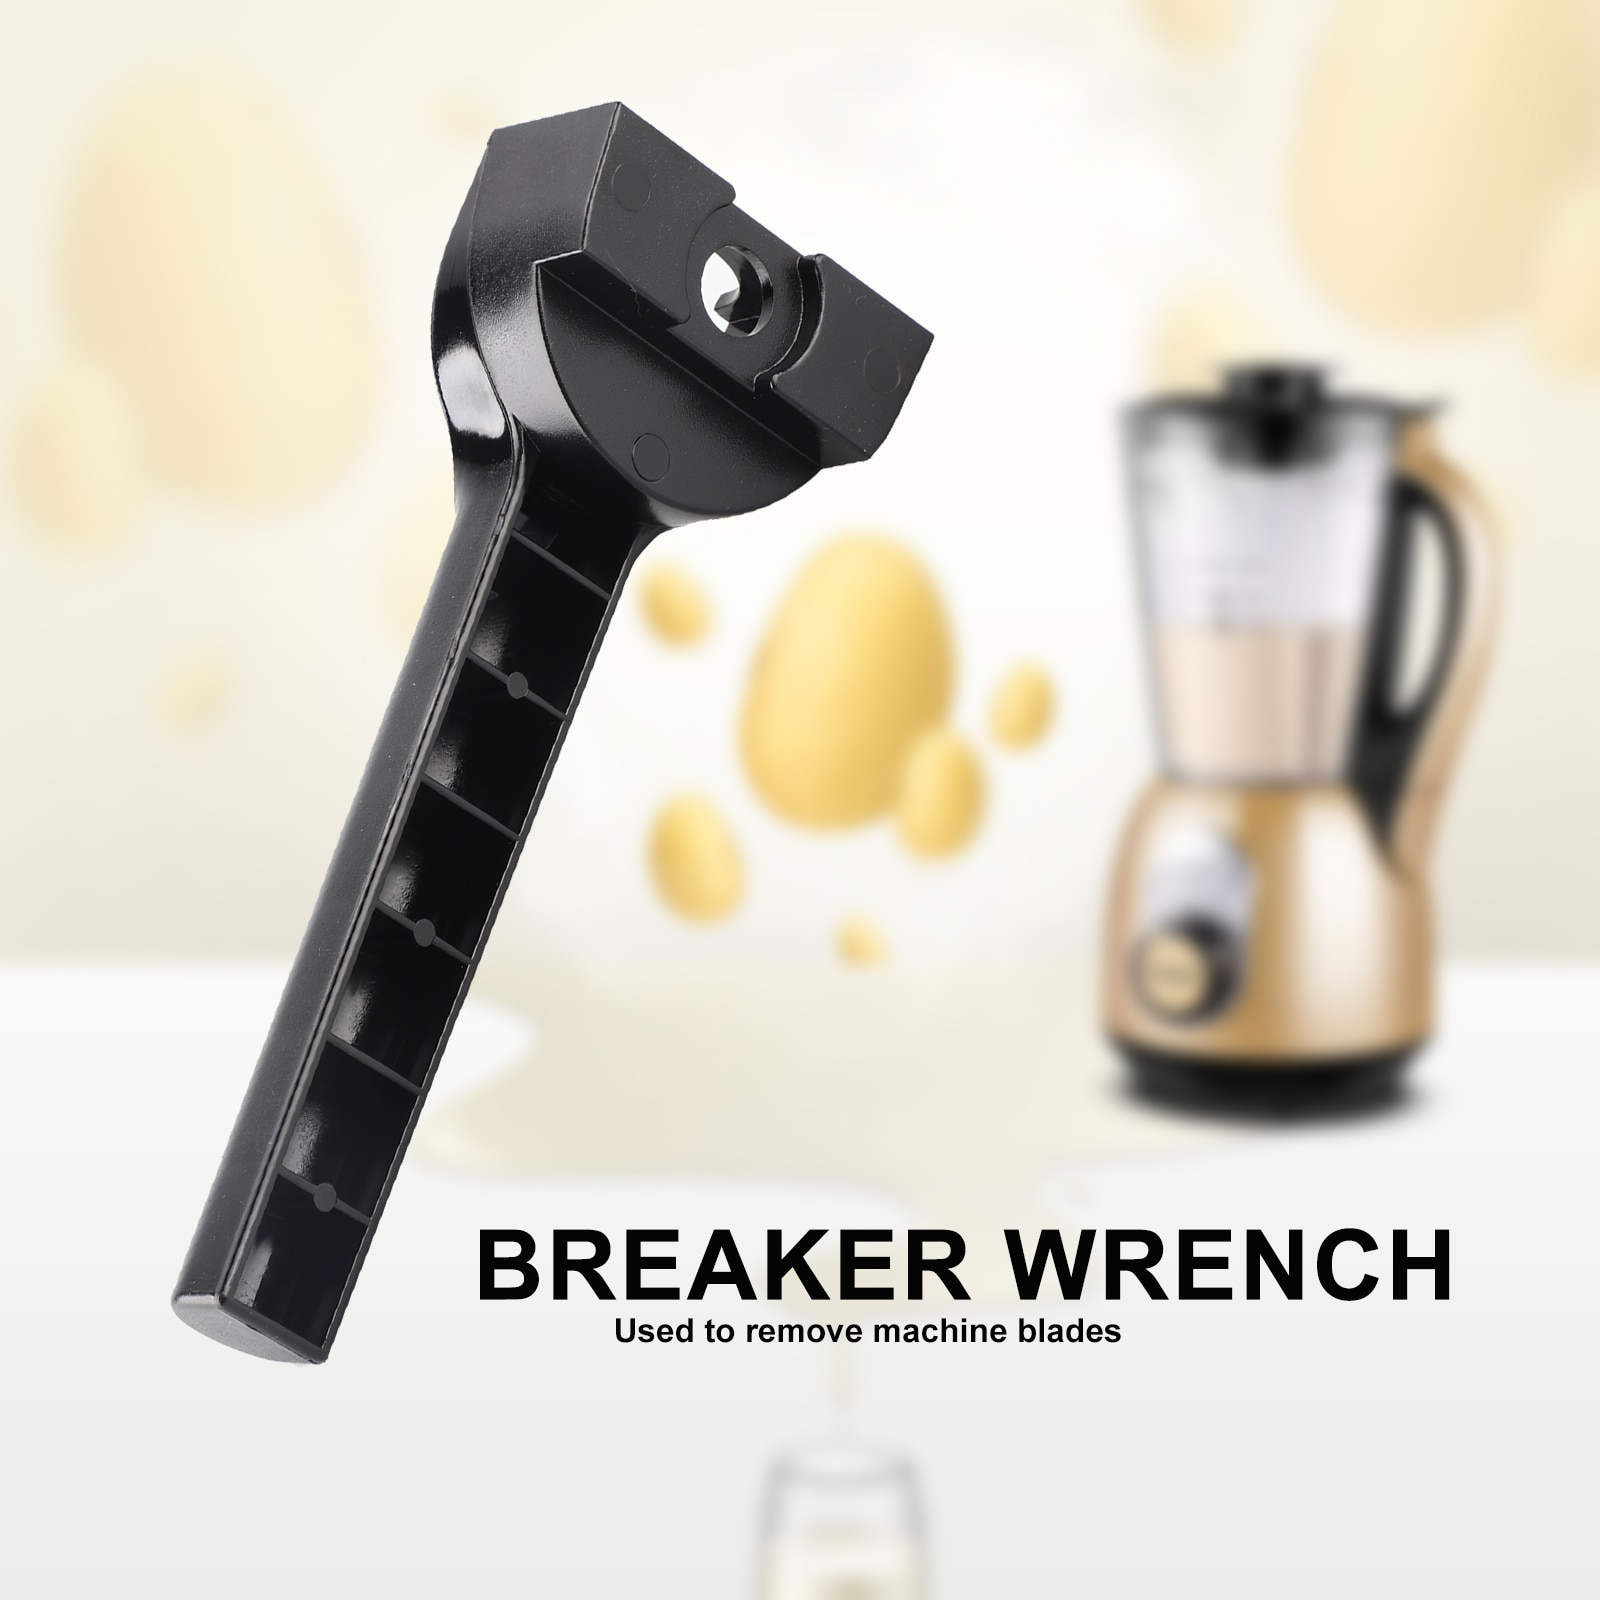 Spanner Wrench for Vitamix Blender Replacement Parts Blender Replacement Household Replaces Removal Tool Wet Blade Assembly professional blender spare parts opener wrench tool key for open blades retainer